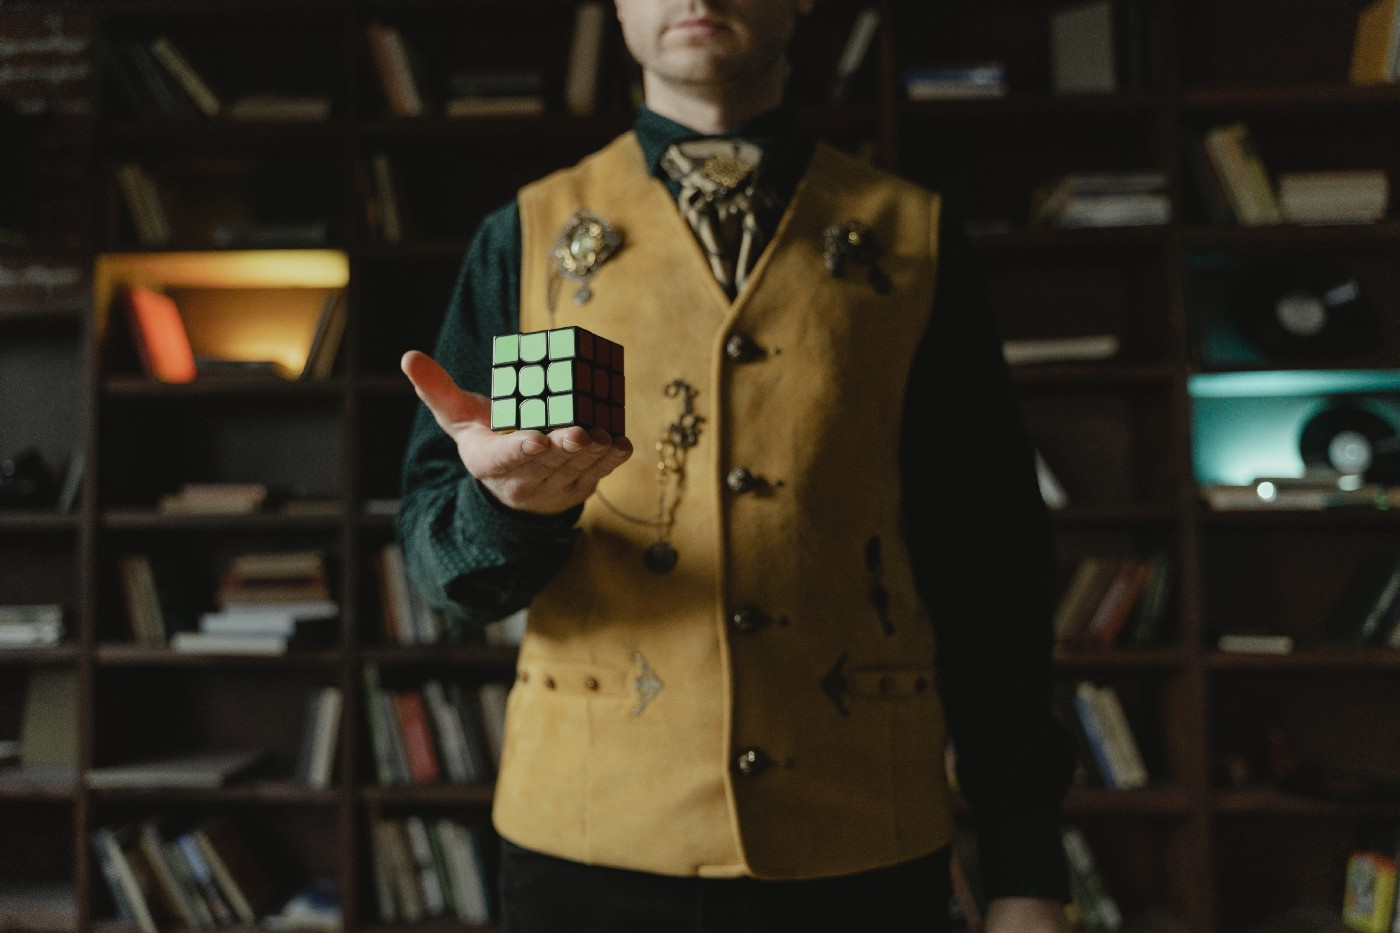 Photo of a man holding a Rubik's cube